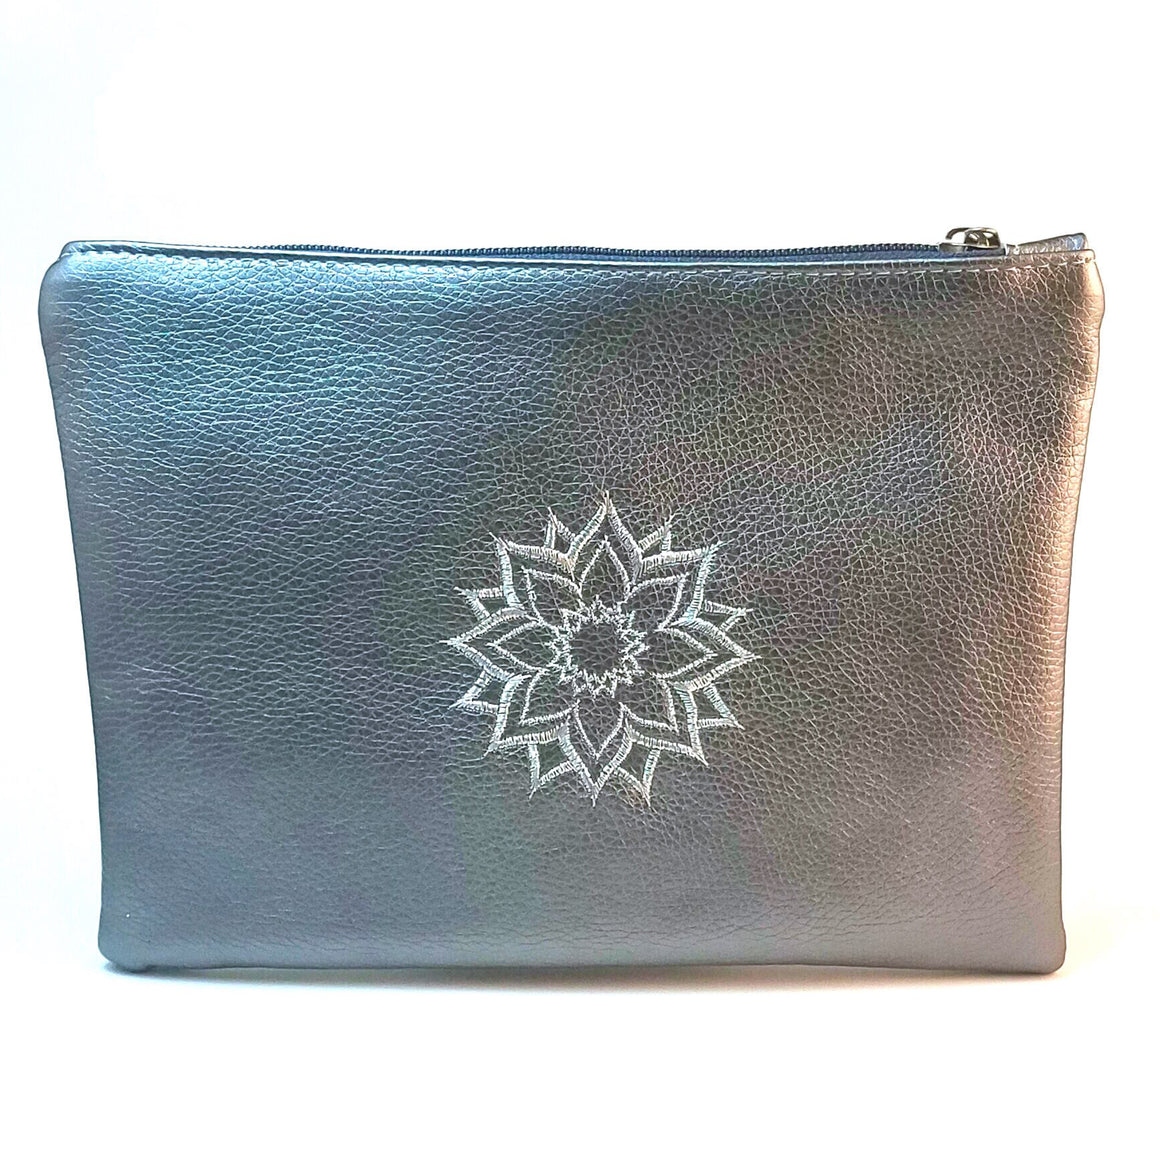 Silver Artisanal Make Up Bag